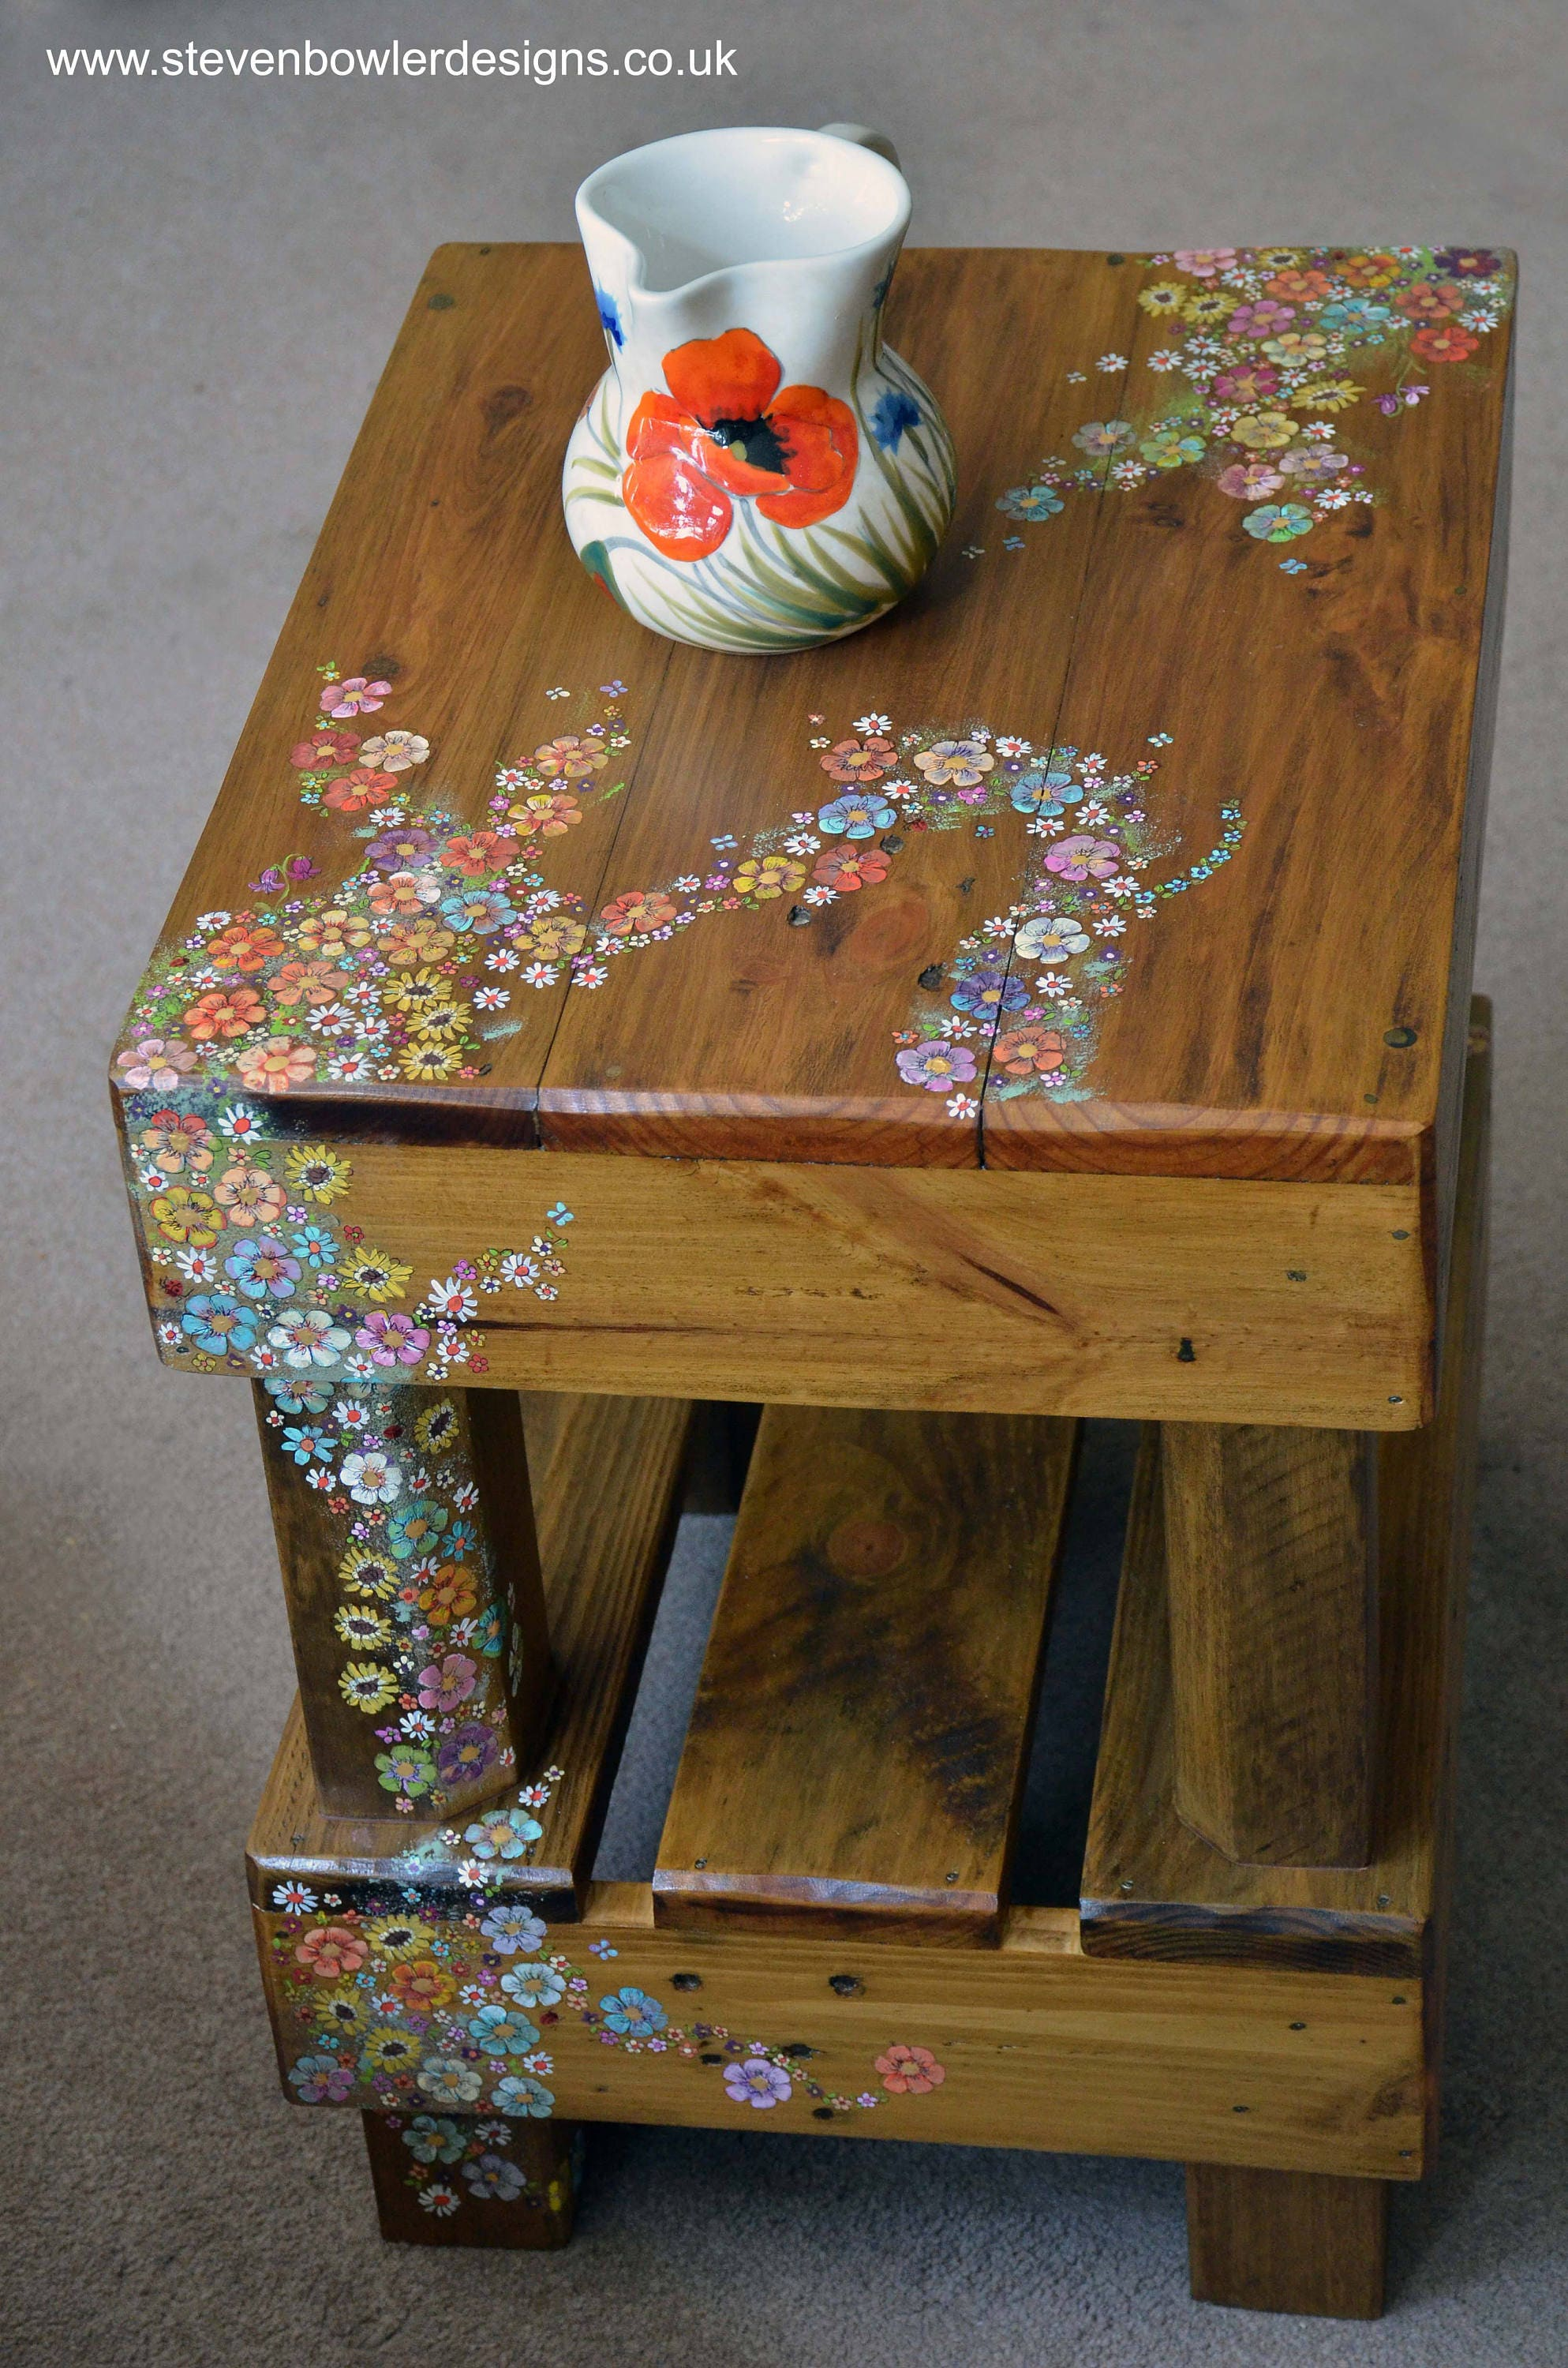 Handcrafted to Order One Rustic Reclaimed Wood Side Table Handpainted English Country Cottage Flower Design Bronze Tacks Undershelf Storage